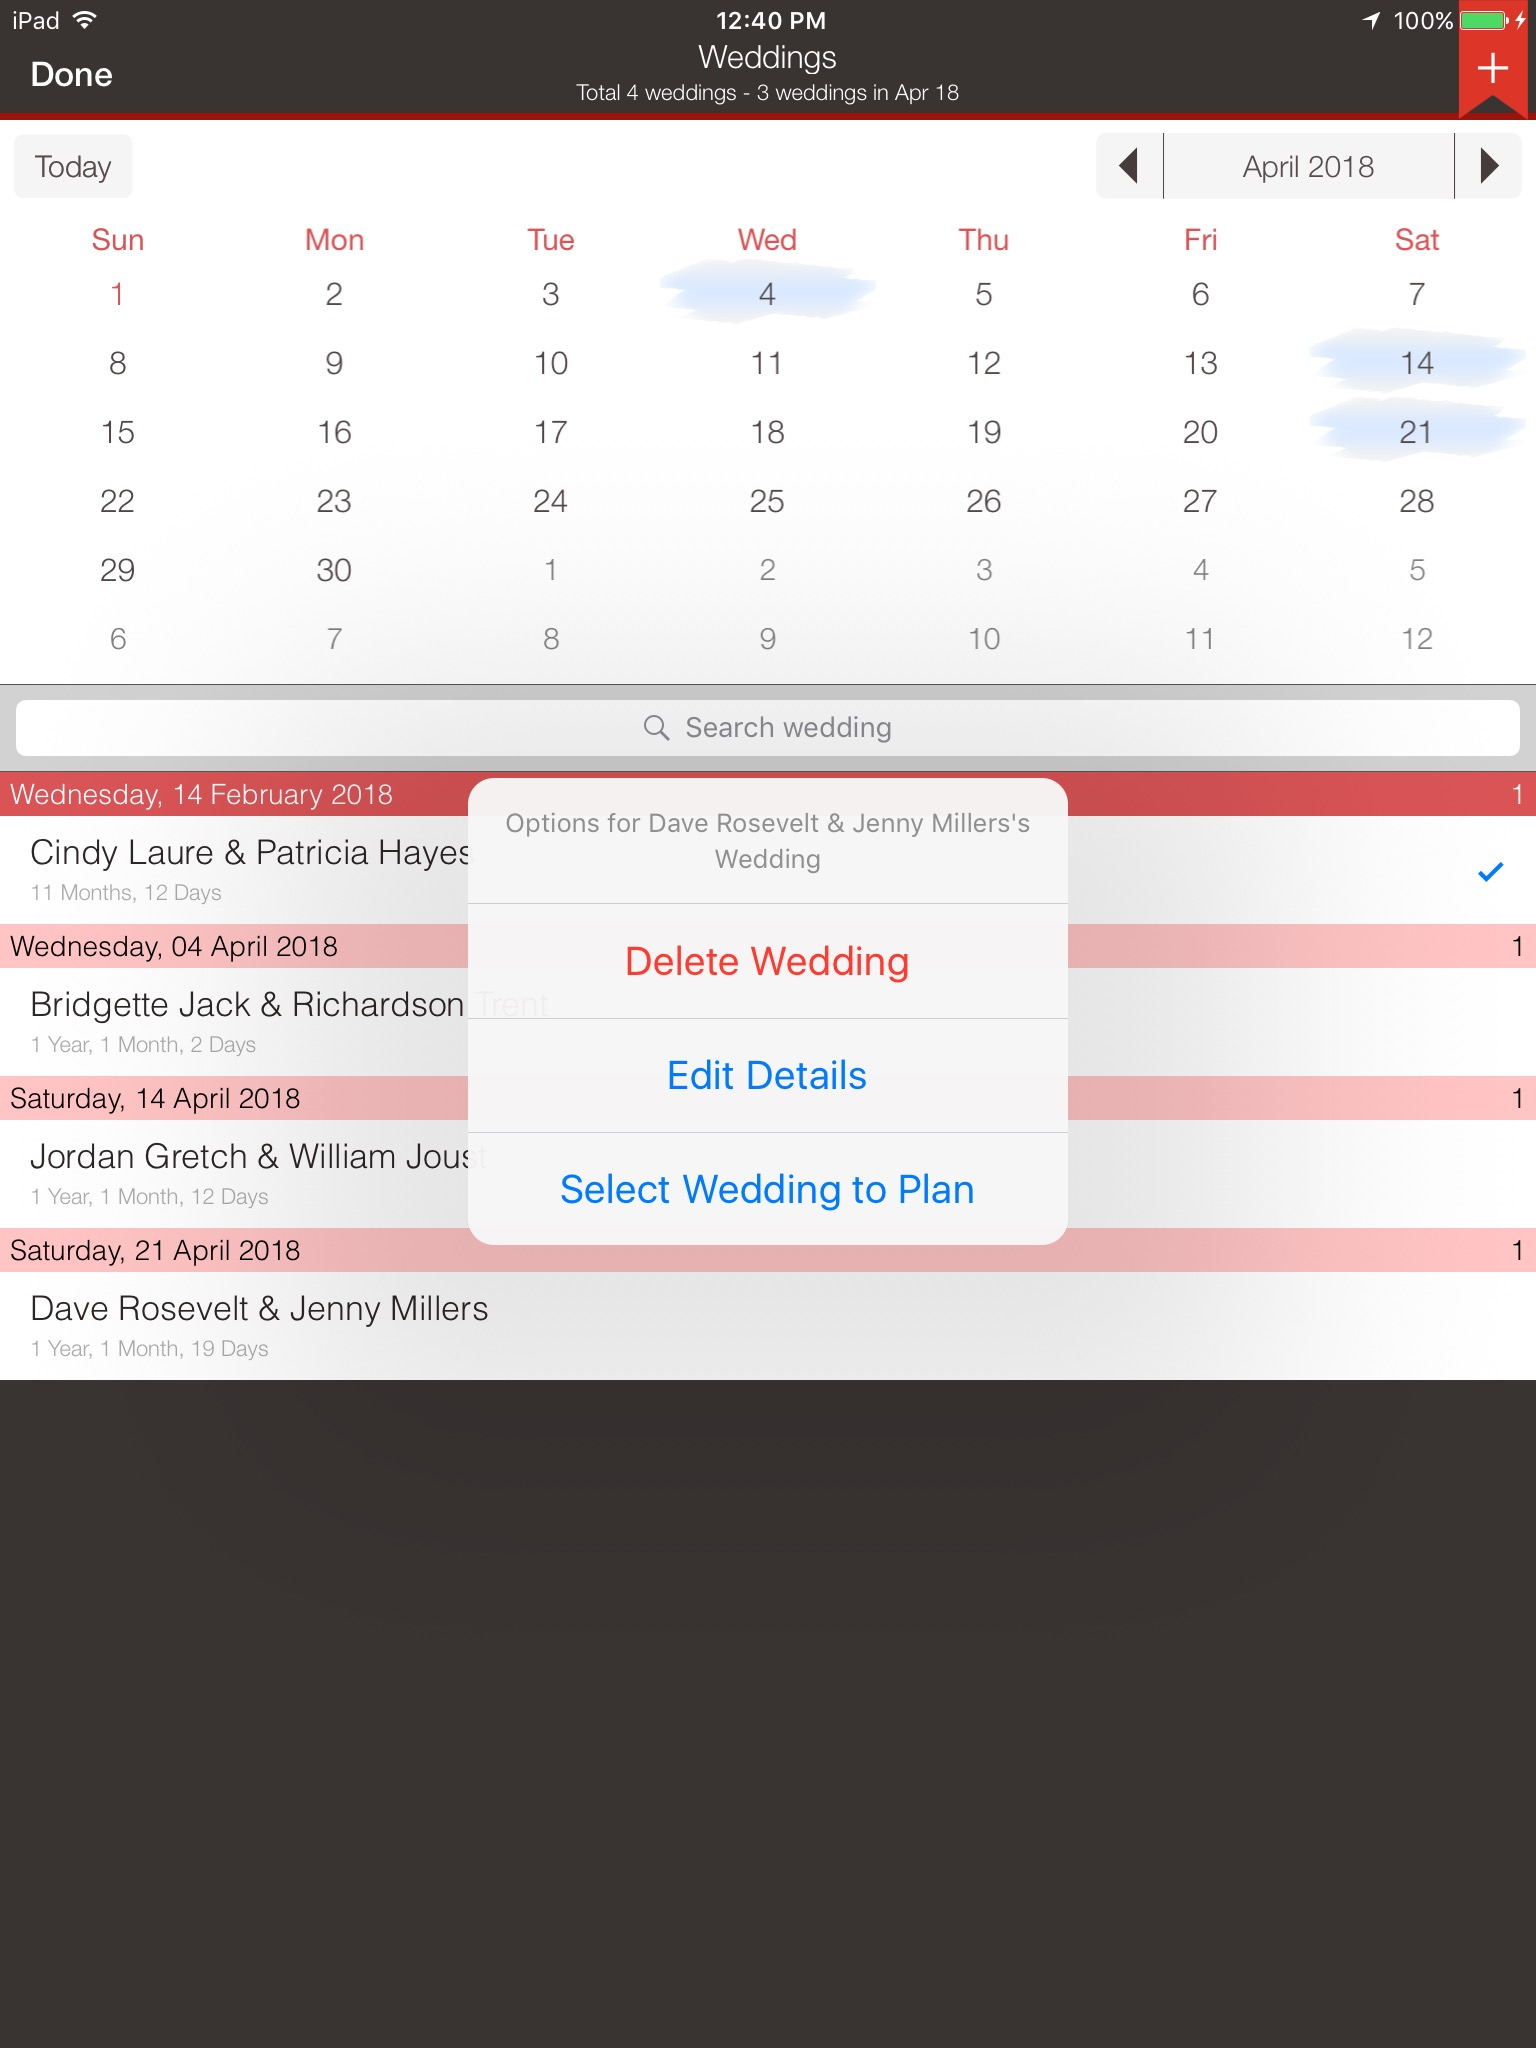 Delete/Edit existing wedding iPad